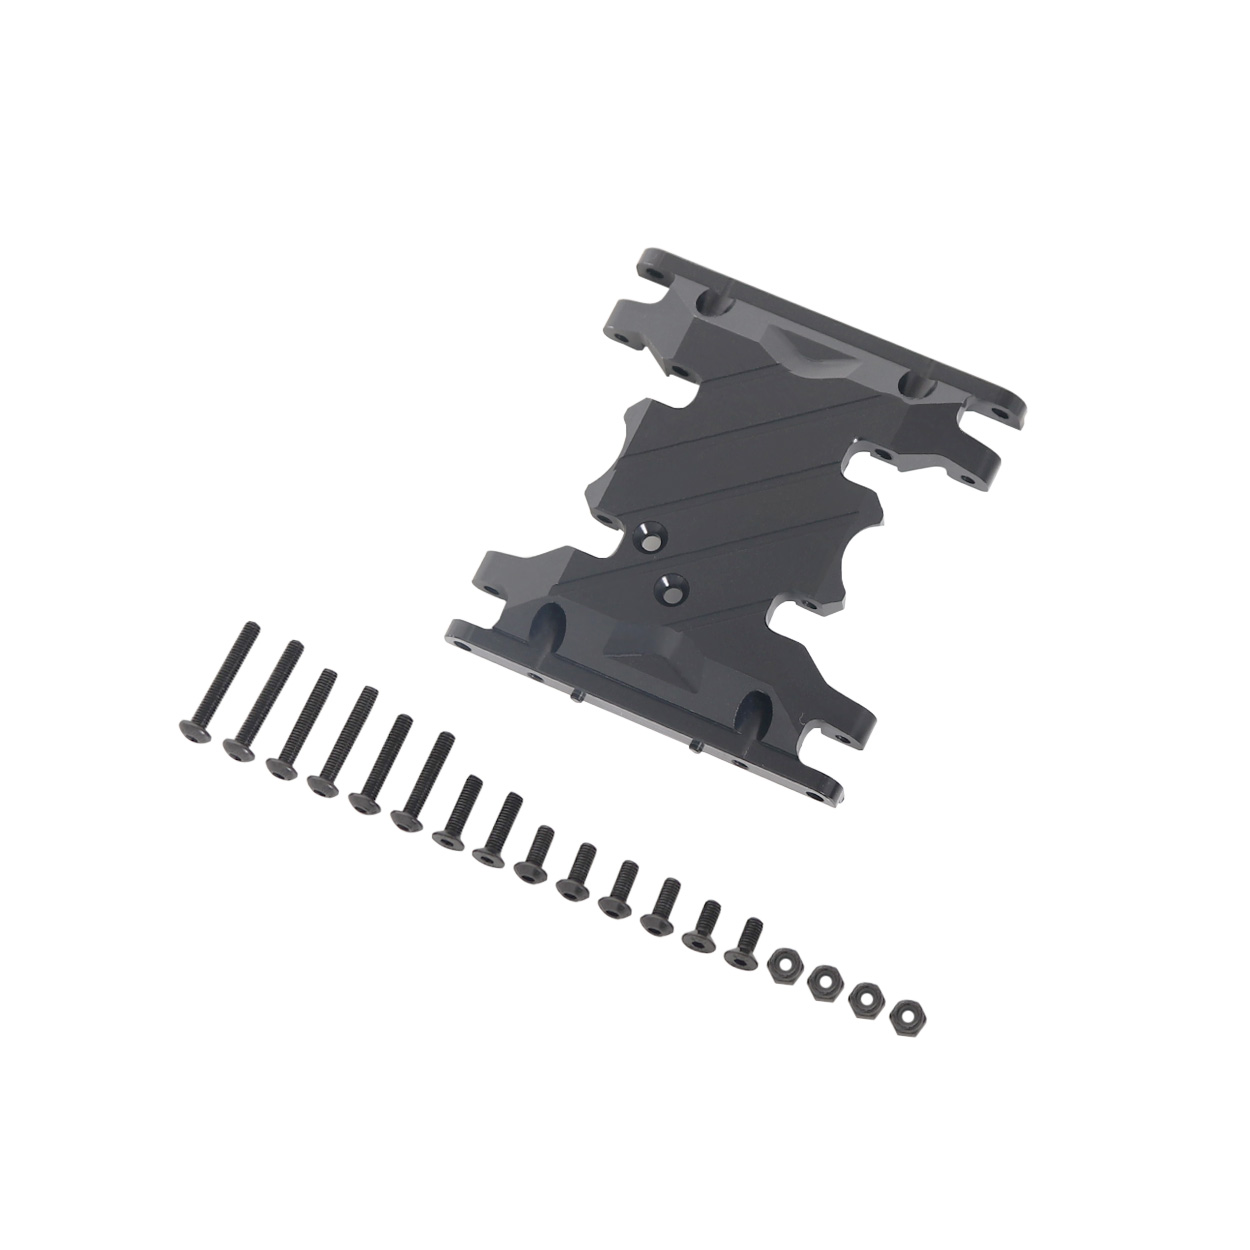 1/10 CNC Alloy Gear Box Mount Holder for 1/10 Rc Crawlers Axial SCX10 D90 D110 black